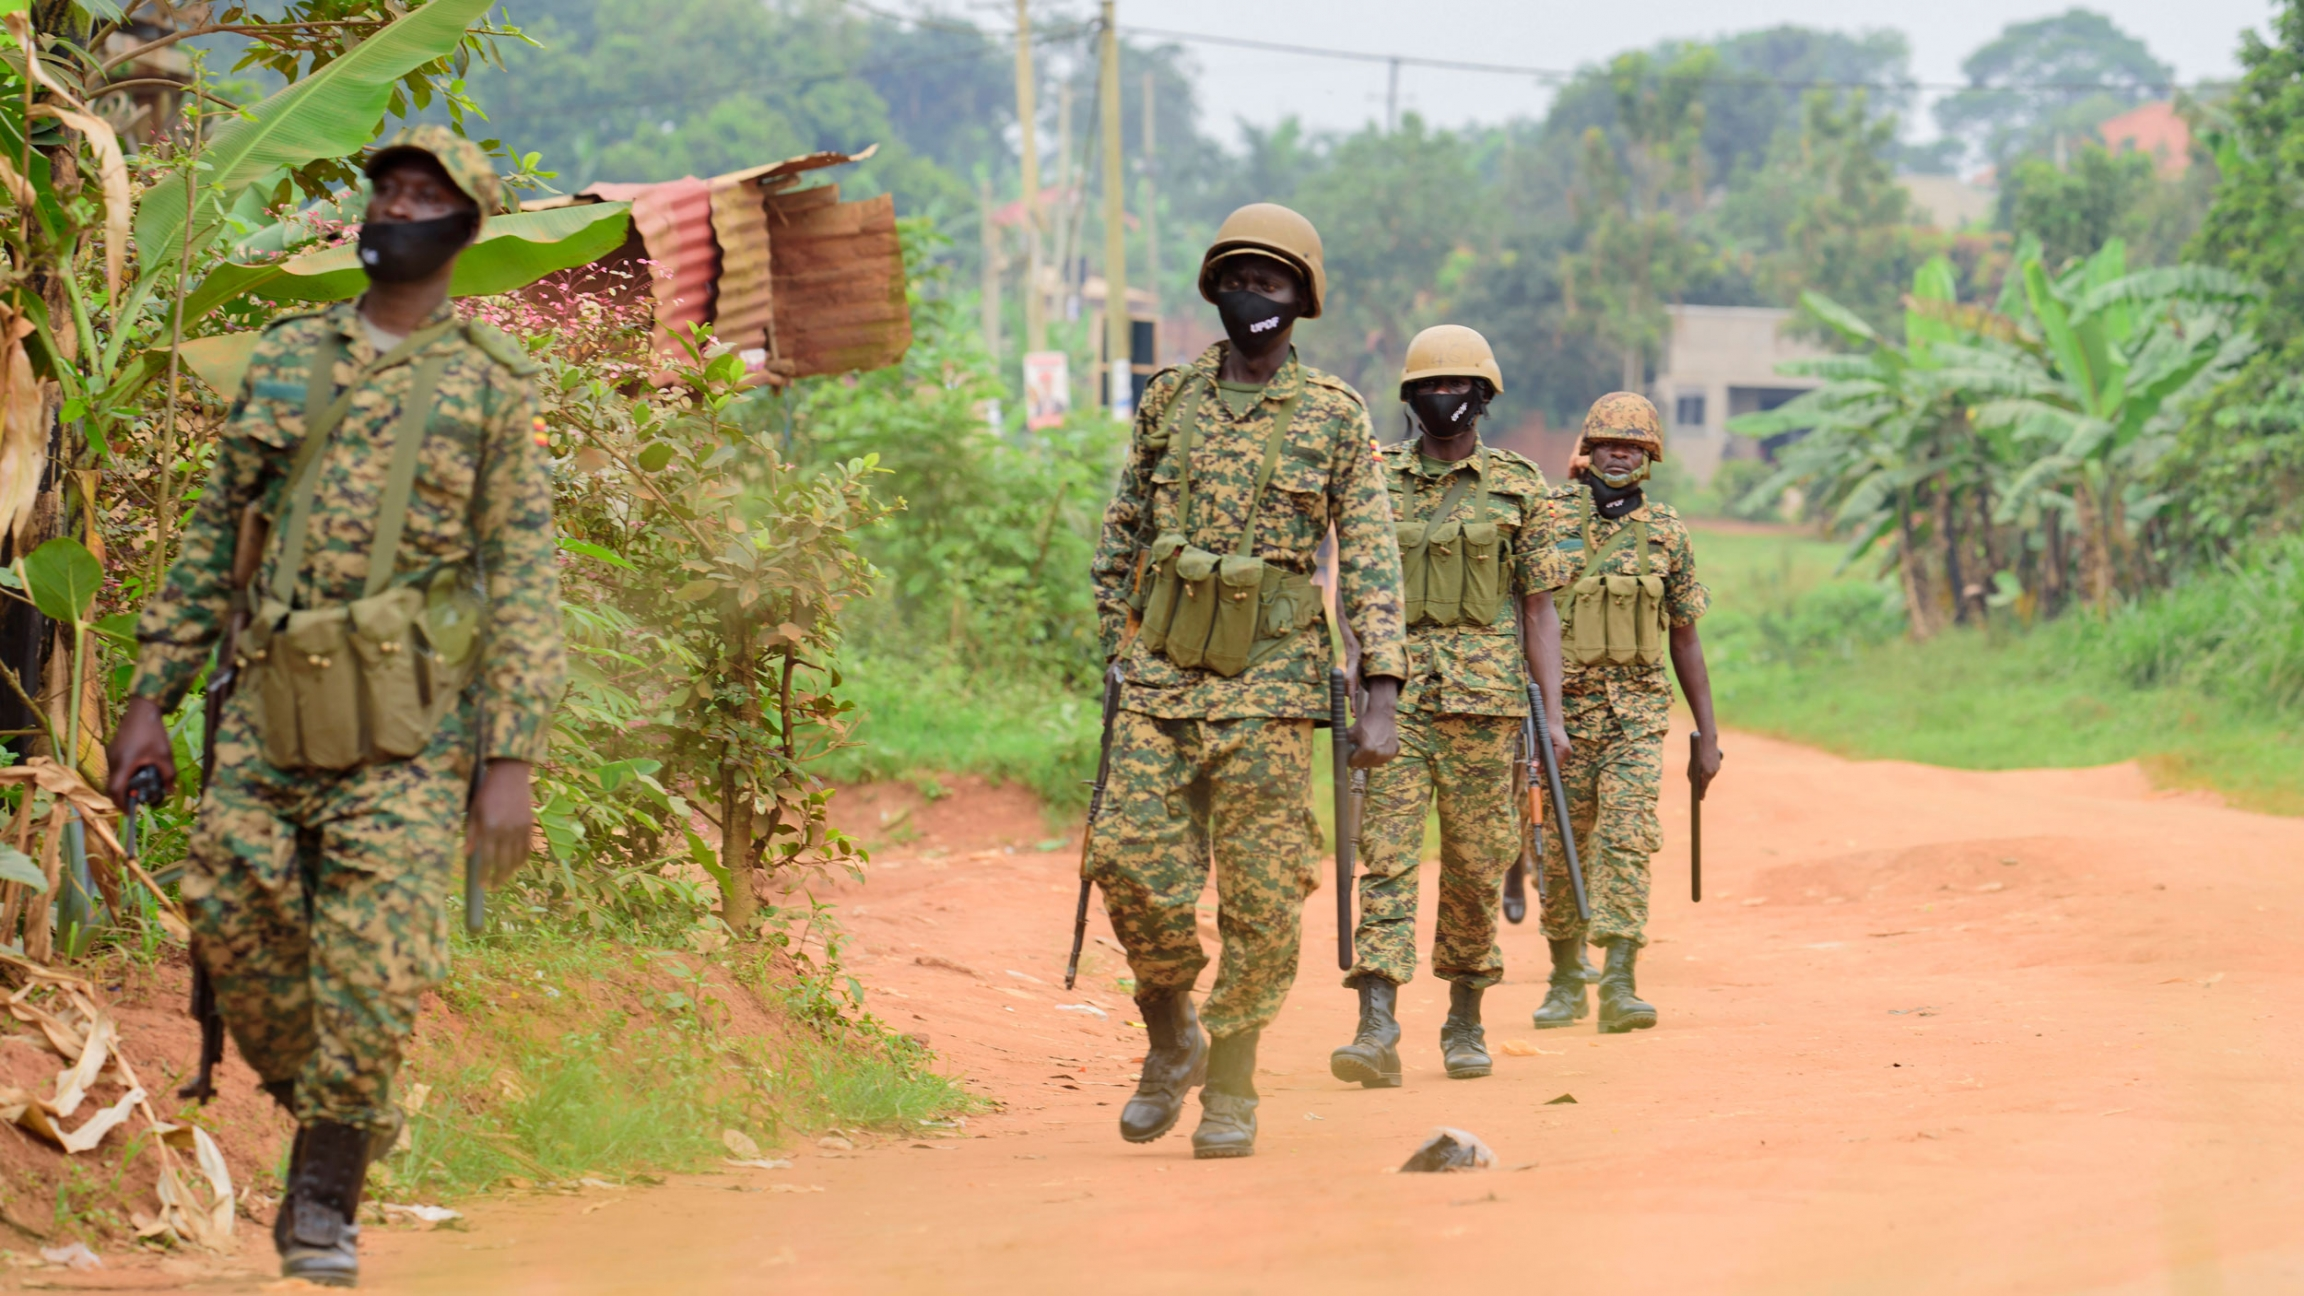 Four soldiers are shown wearing military fatigues and helmets while carrying weapons and walking in a dirt road.